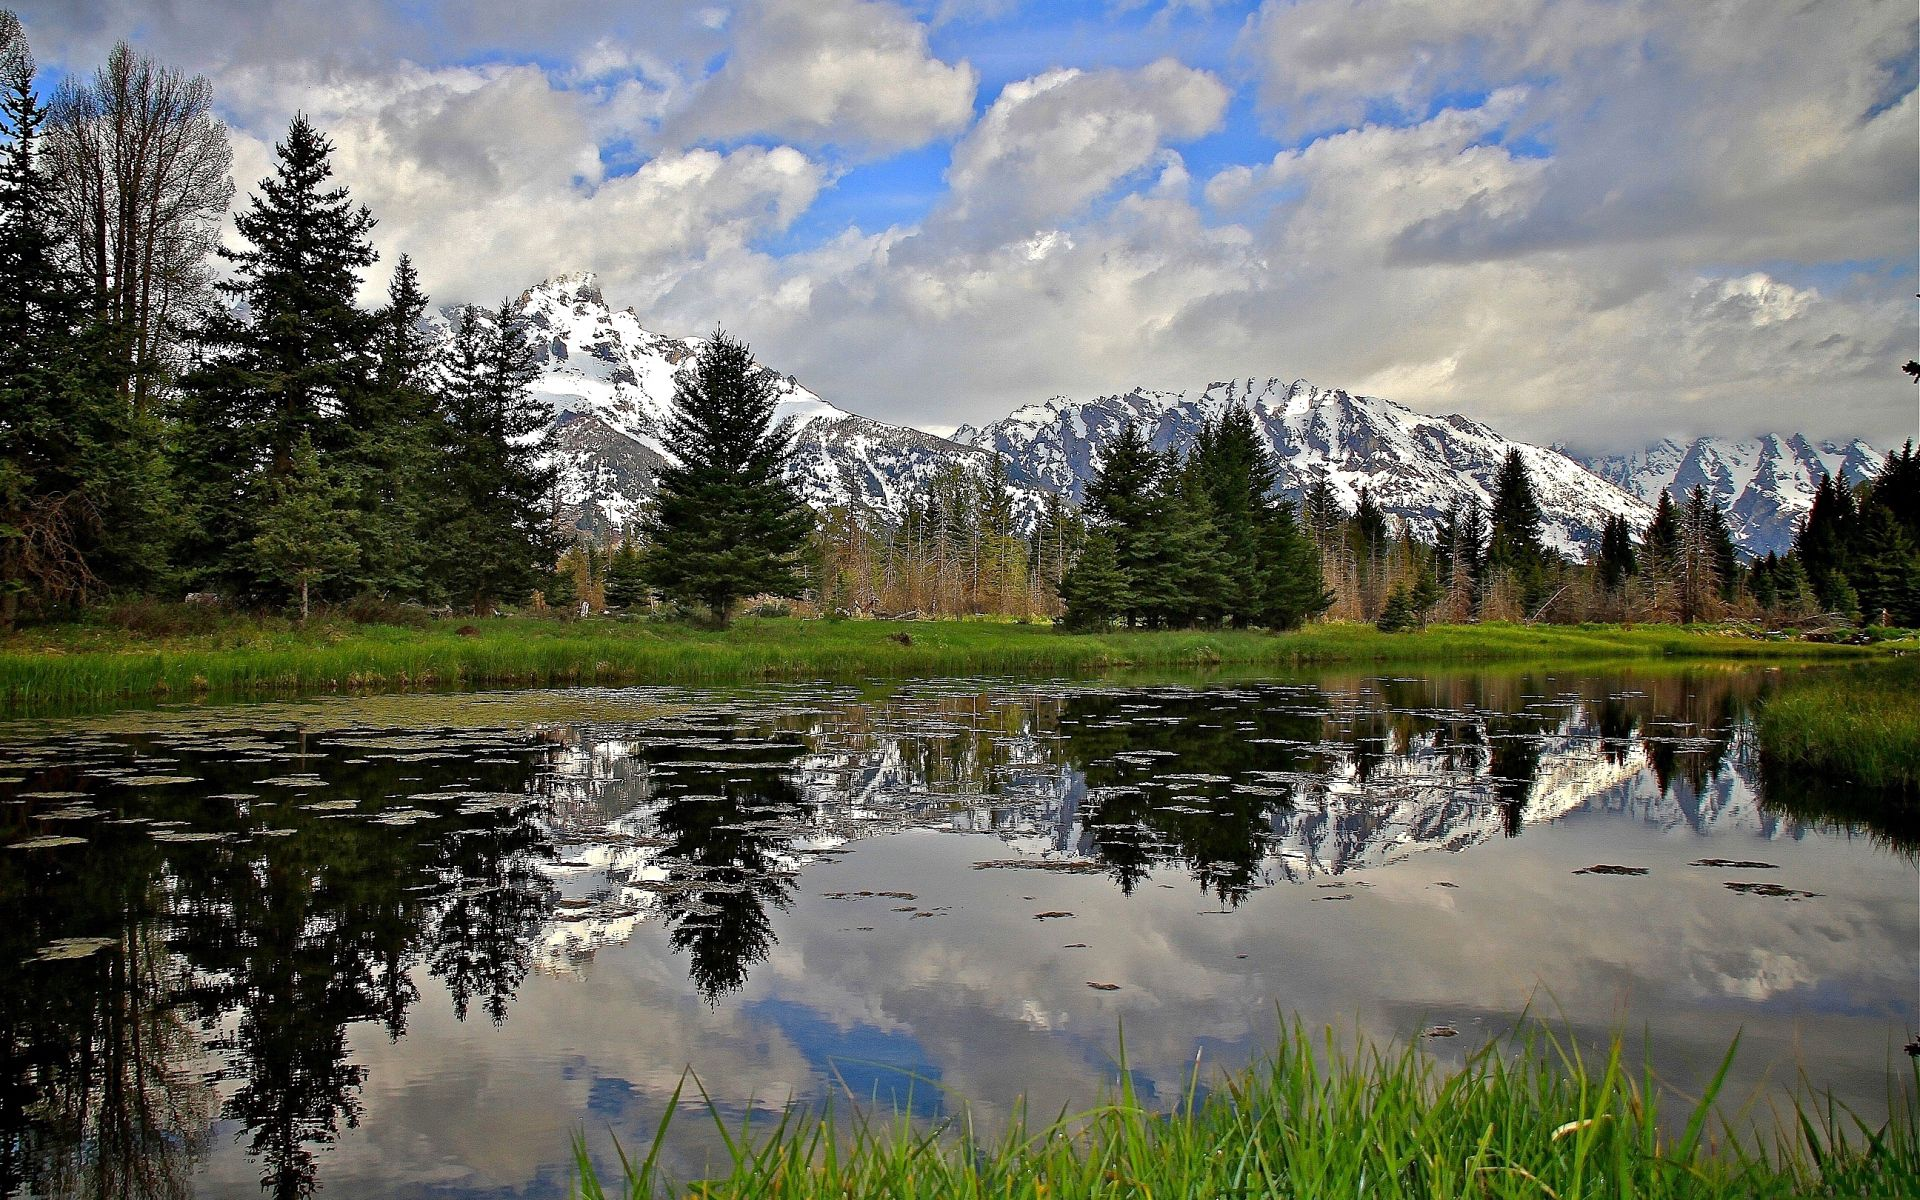 56760 free wallpaper 320x480 for phone, download images Nature, Rivers, Trees, Grass, Mountain 320x480 for mobile